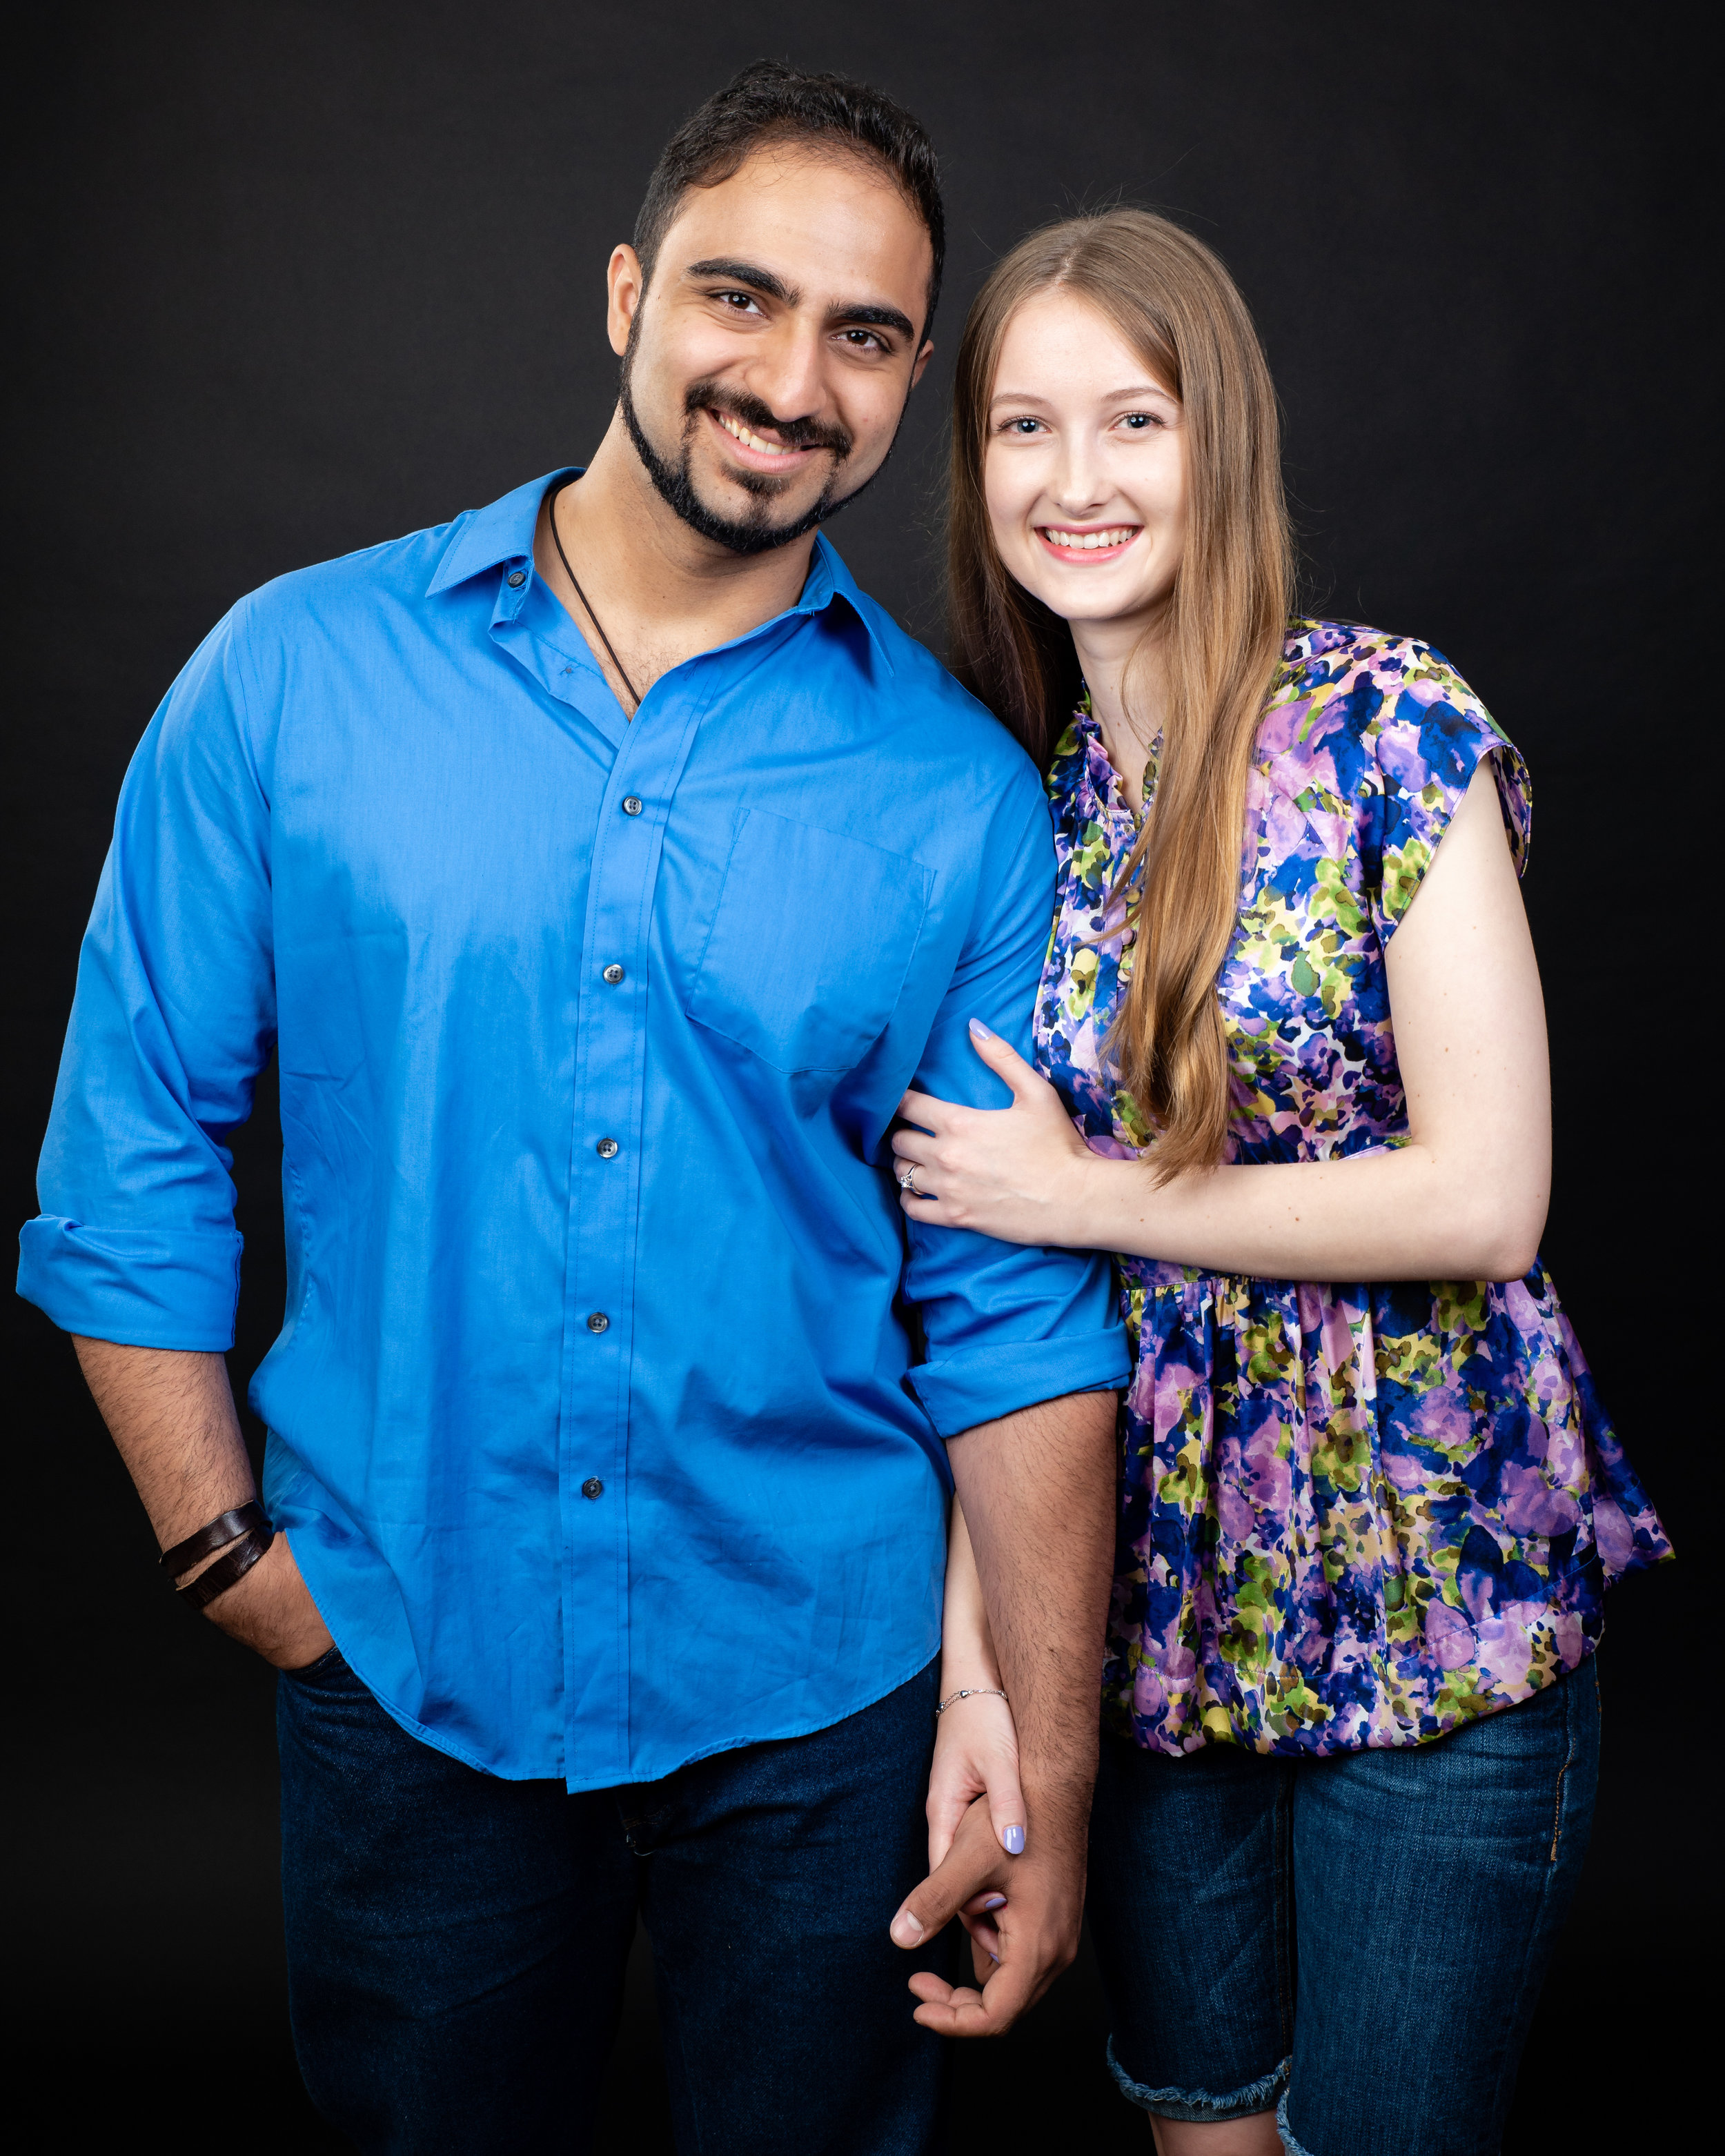 2018_September_16-Kaitlyn_Davood_Engagement_Studio_Shoot-51301.jpg